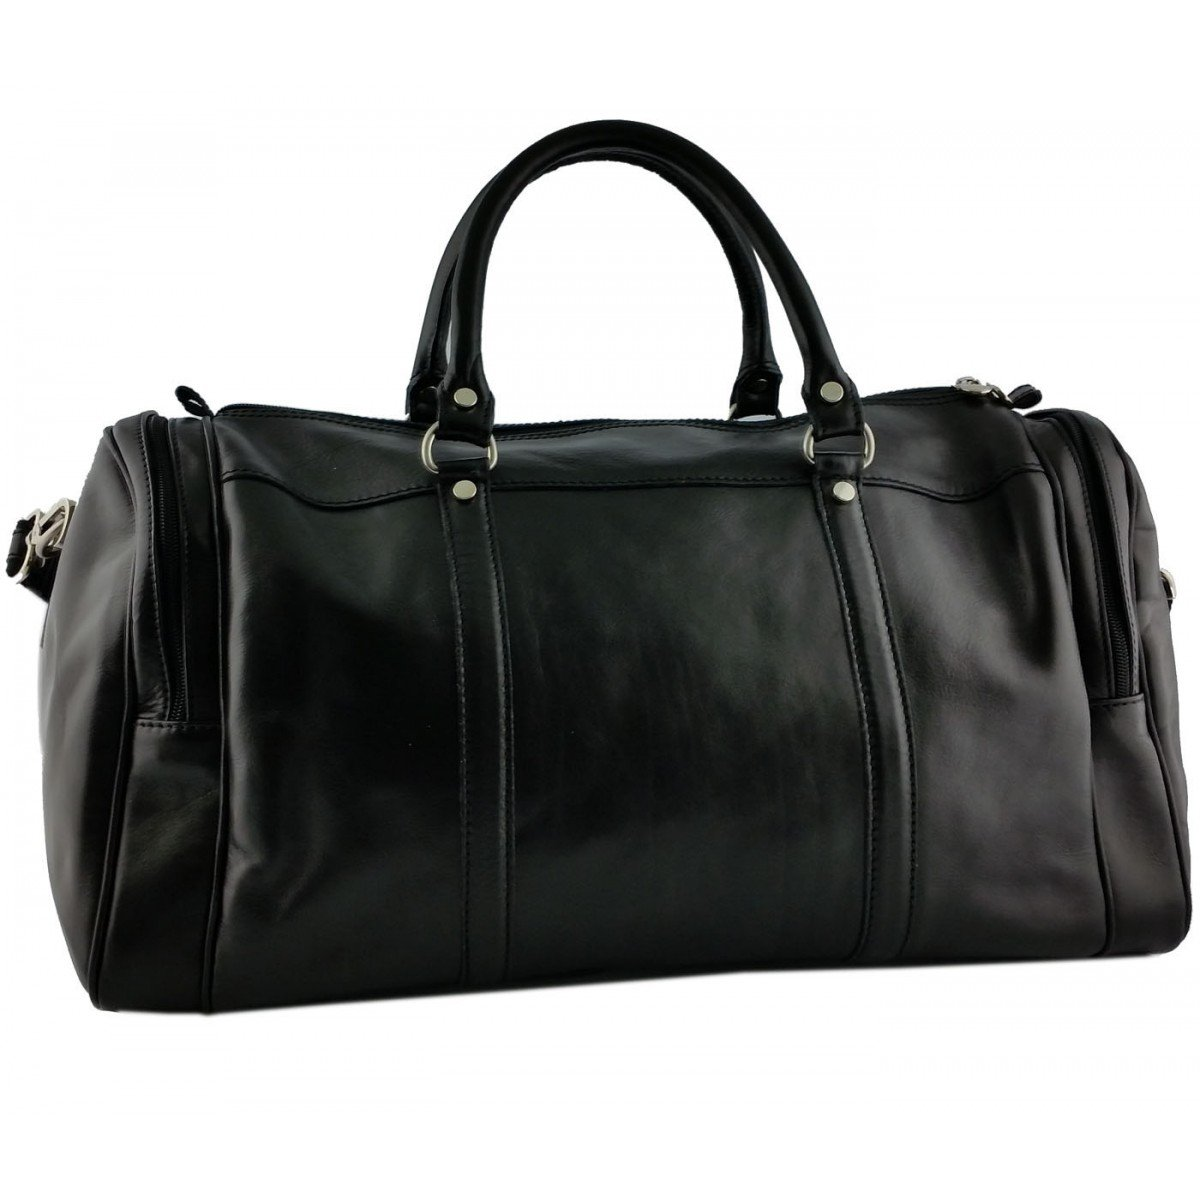 Made In Italy Leather Travel Bag Color Black - Travel Bag B014T6HHG0